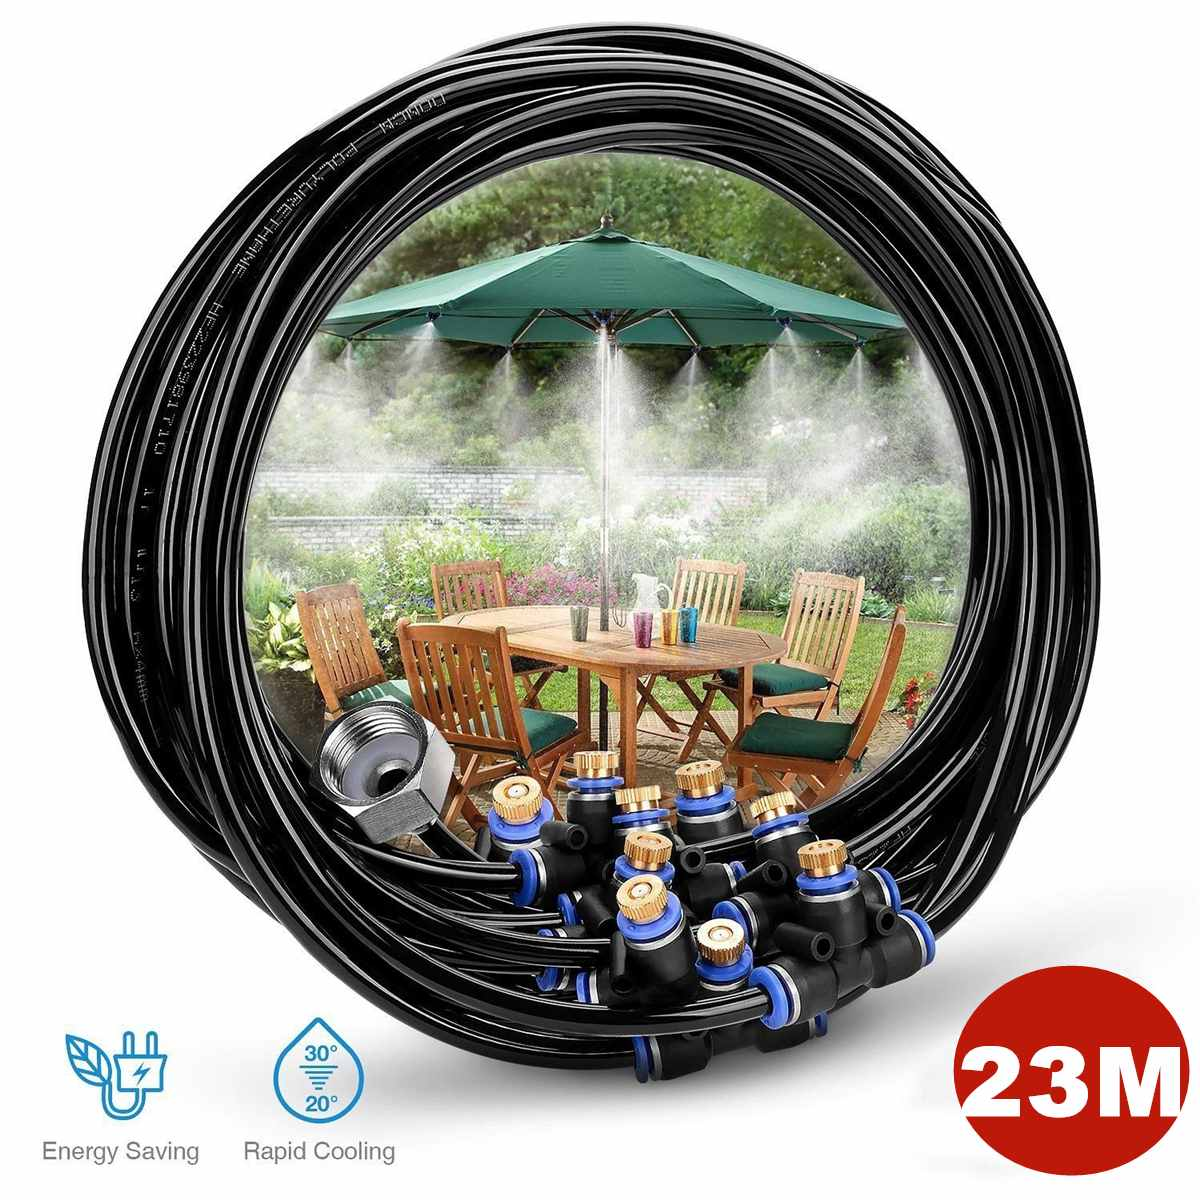 Irrigation Tools Outdoor Garden Sprinkler Watering Kit Patio Cooling System Water Spray Misting Atomizer 23M Line 3/4 ConnectorIrrigation Tools Outdoor Garden Sprinkler Watering Kit Patio Cooling System Water Spray Misting Atomizer 23M Line 3/4 Connector